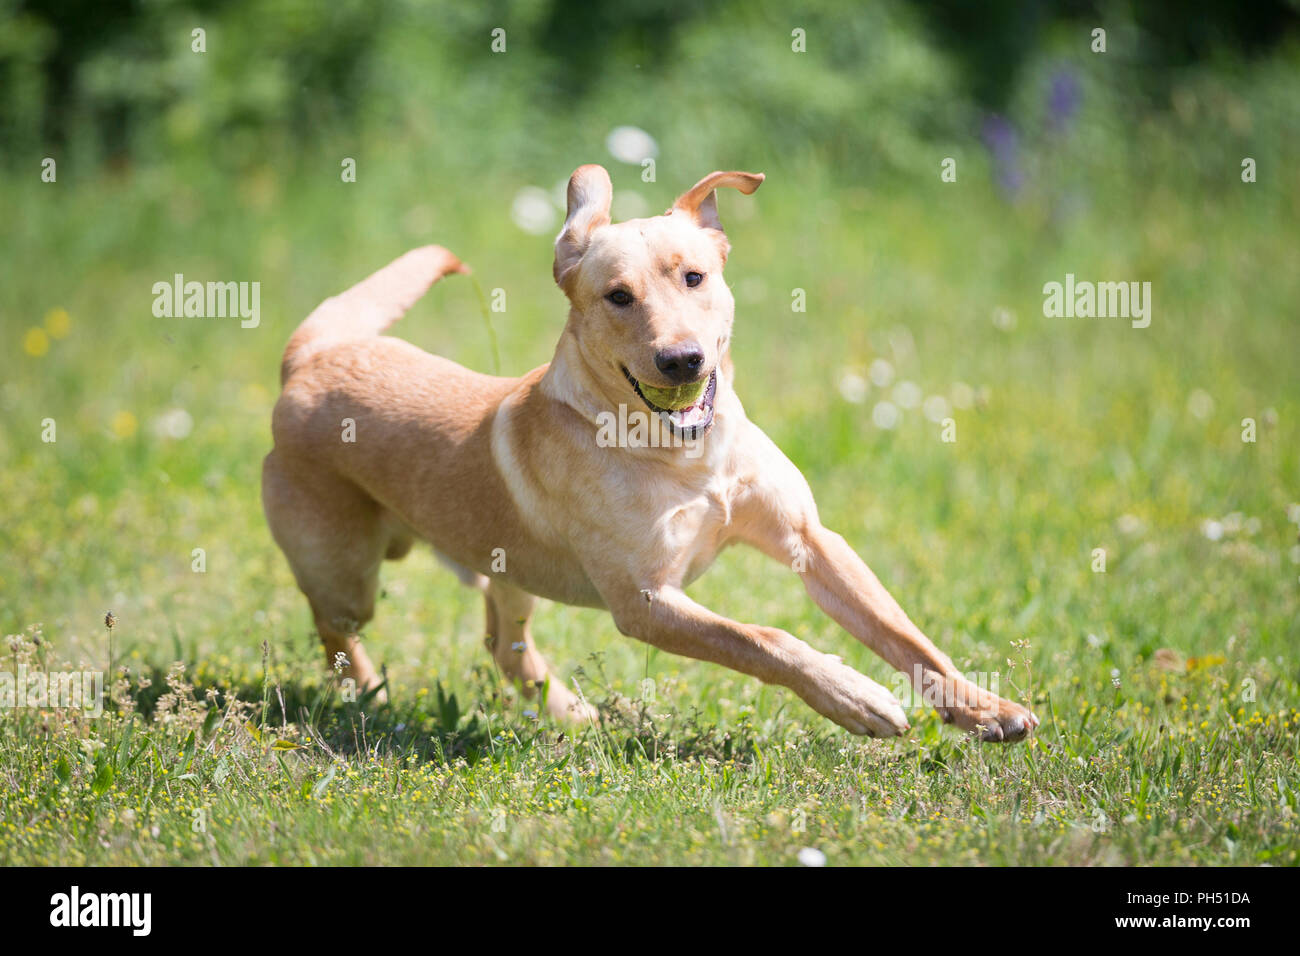 Labrador Retriever. Male dog Kelo, trained as conservation dog for the protection of loggerhead turtles, running on a meadow. Switzerland - Stock Image